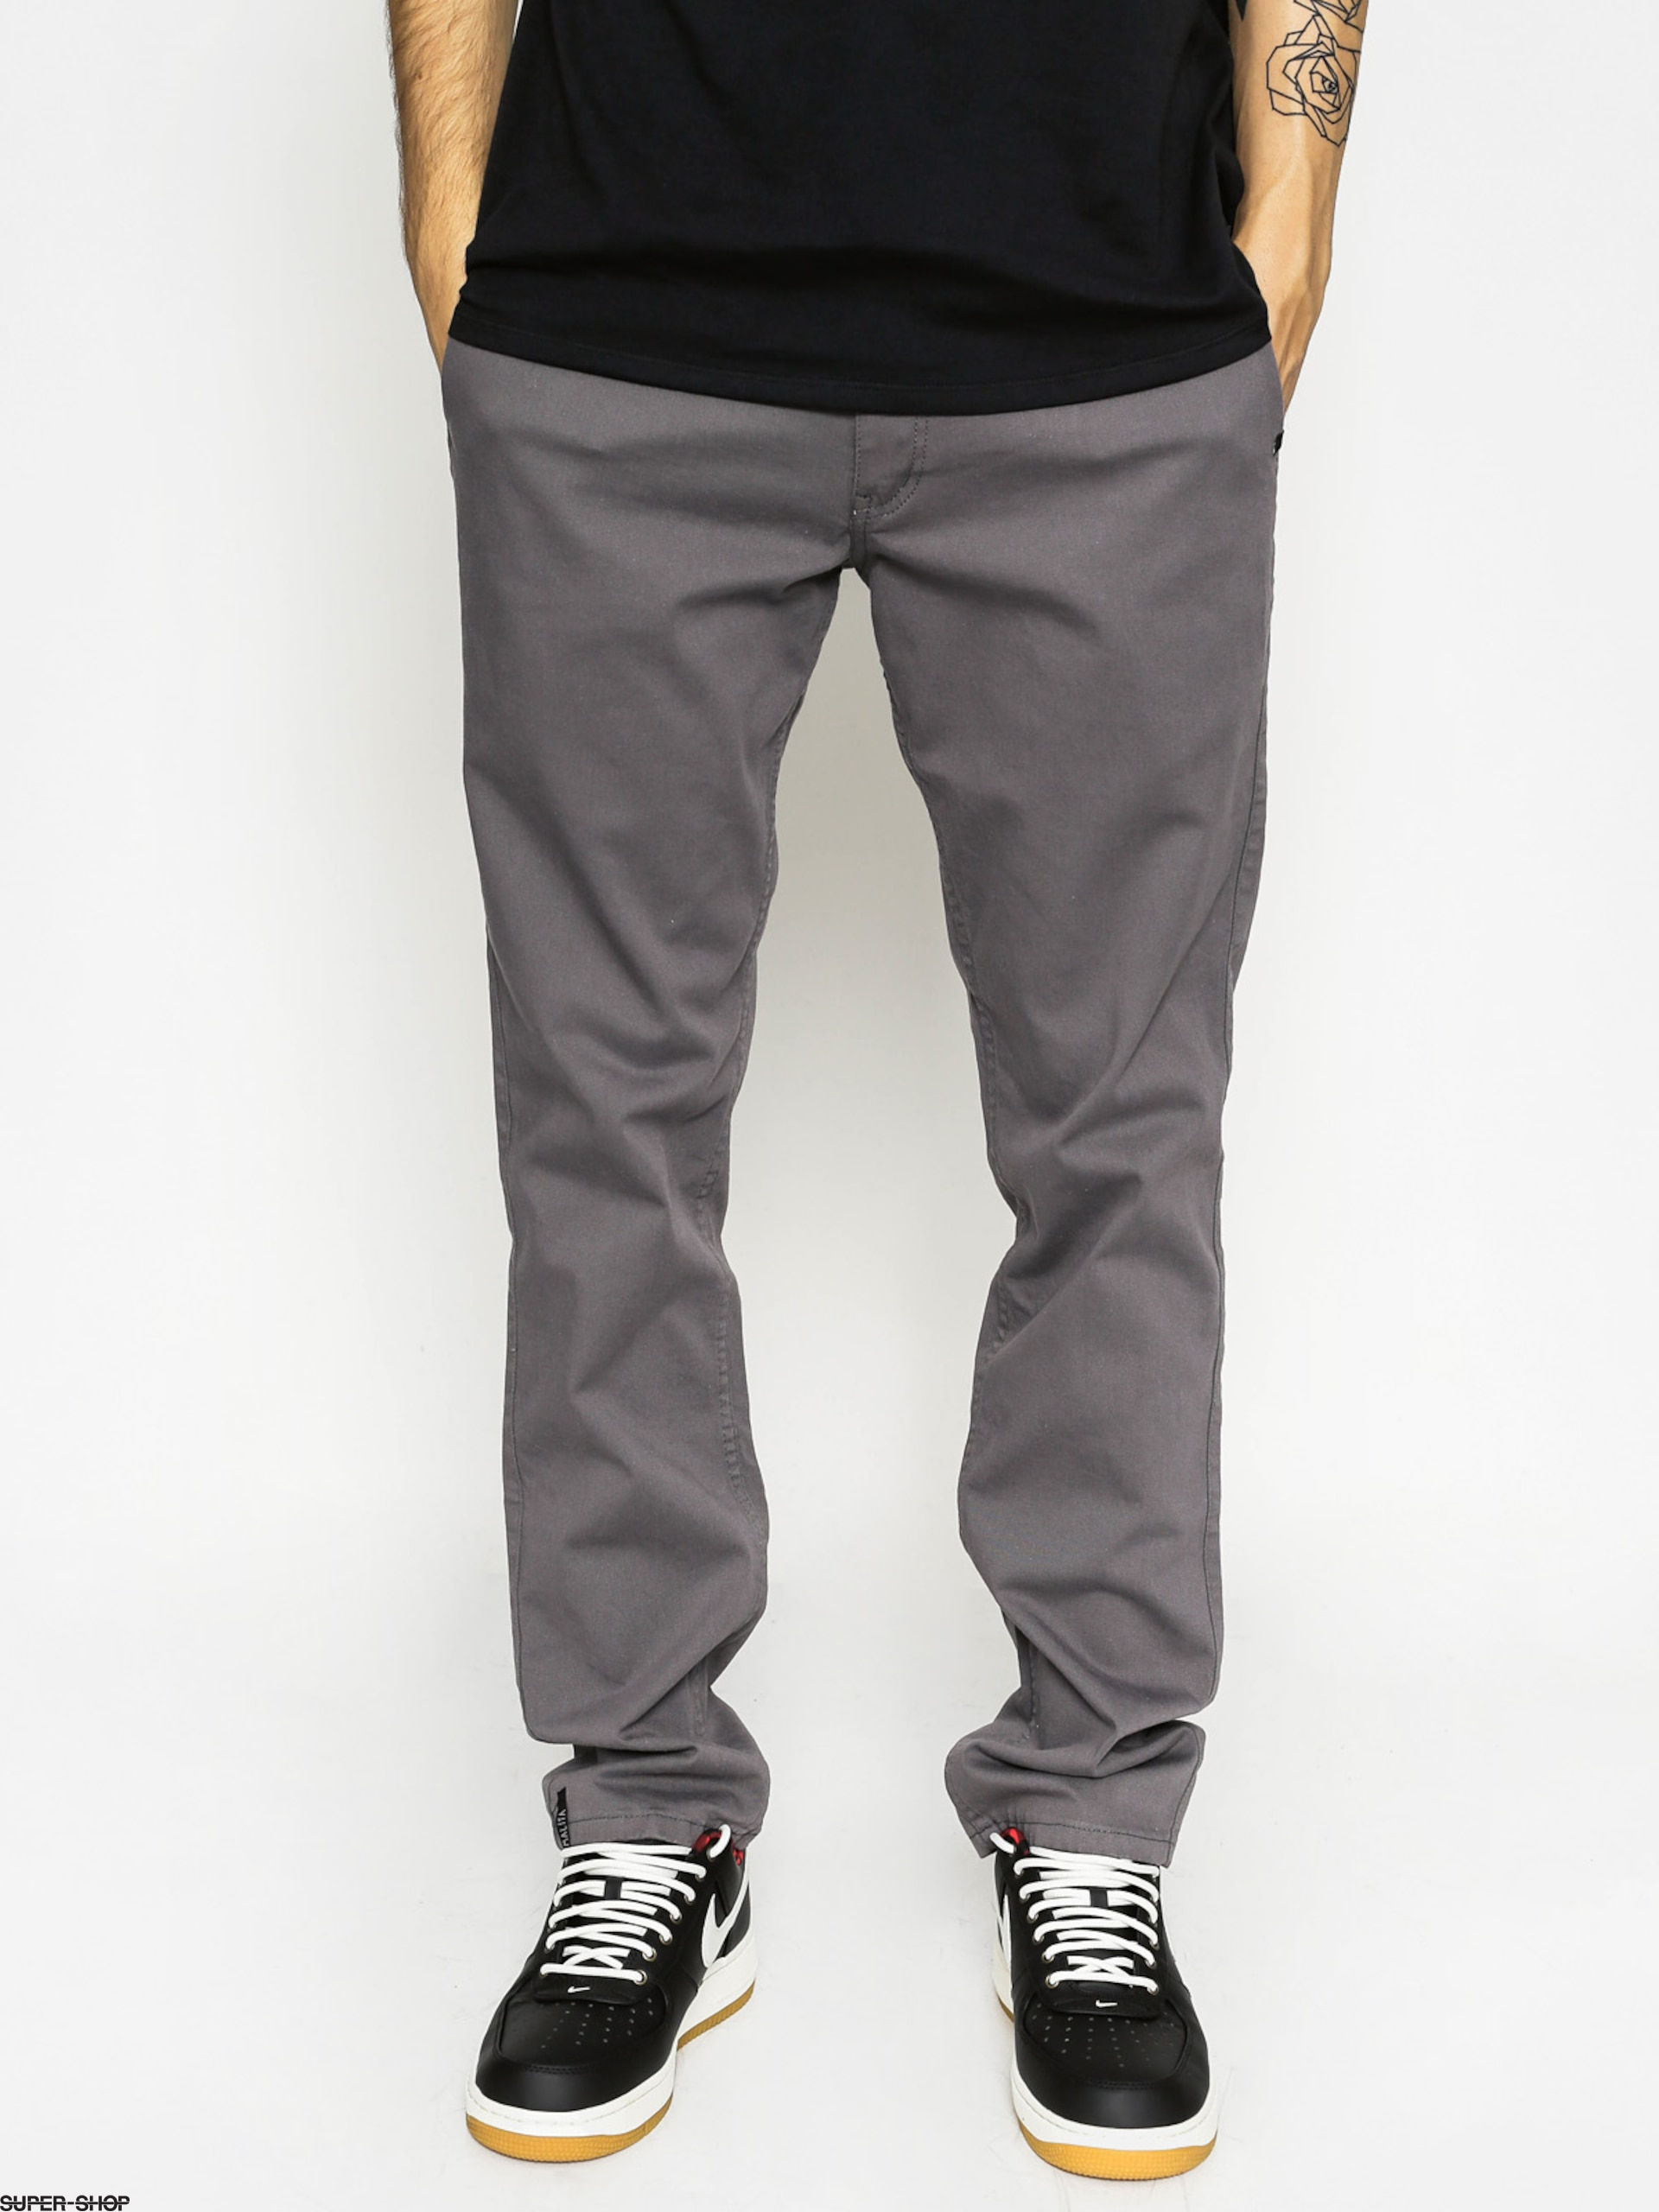 Malita Pants Chino (grey/camo)